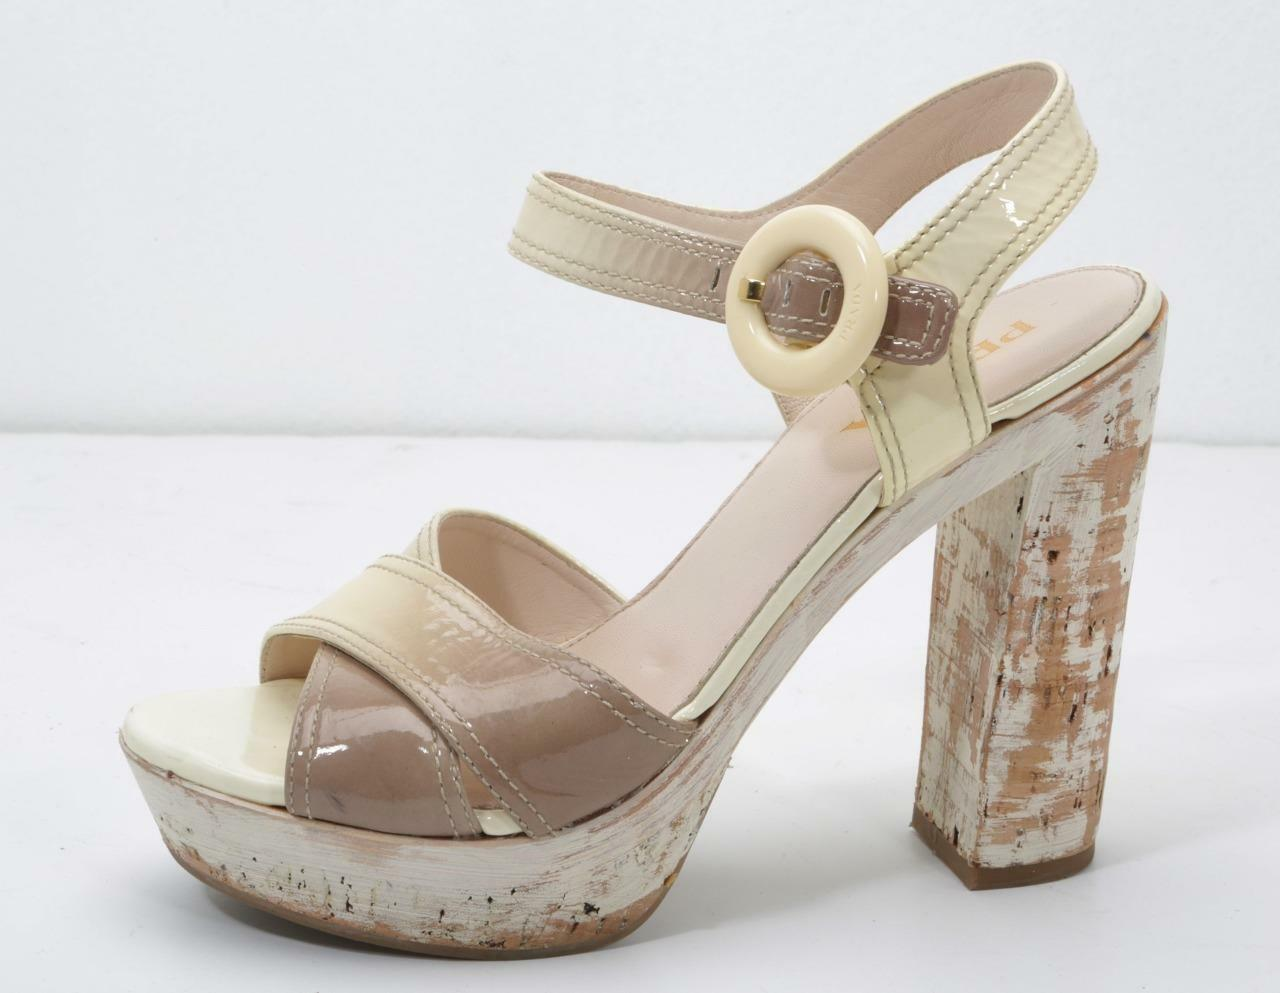 PRADA Womens Cream-Beige Patent Leather Ankle Strap Painted Wood Heels 7.5-37.5